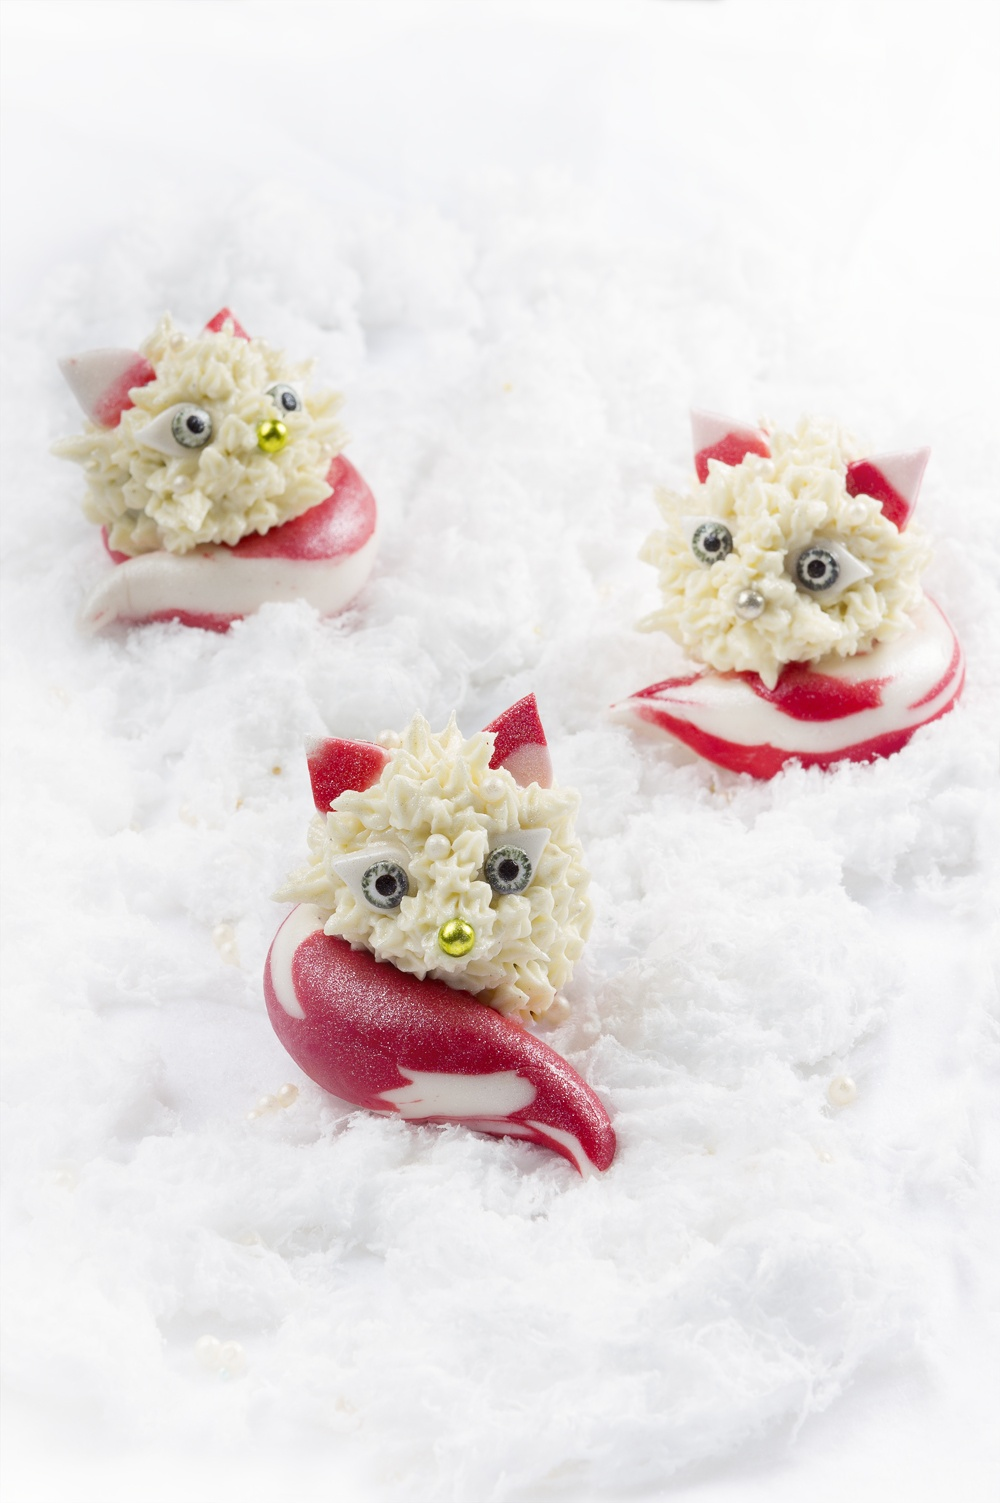 cake-pops-renard-des-neiges-studio-de-creation-qui-a-vole-les-tartes